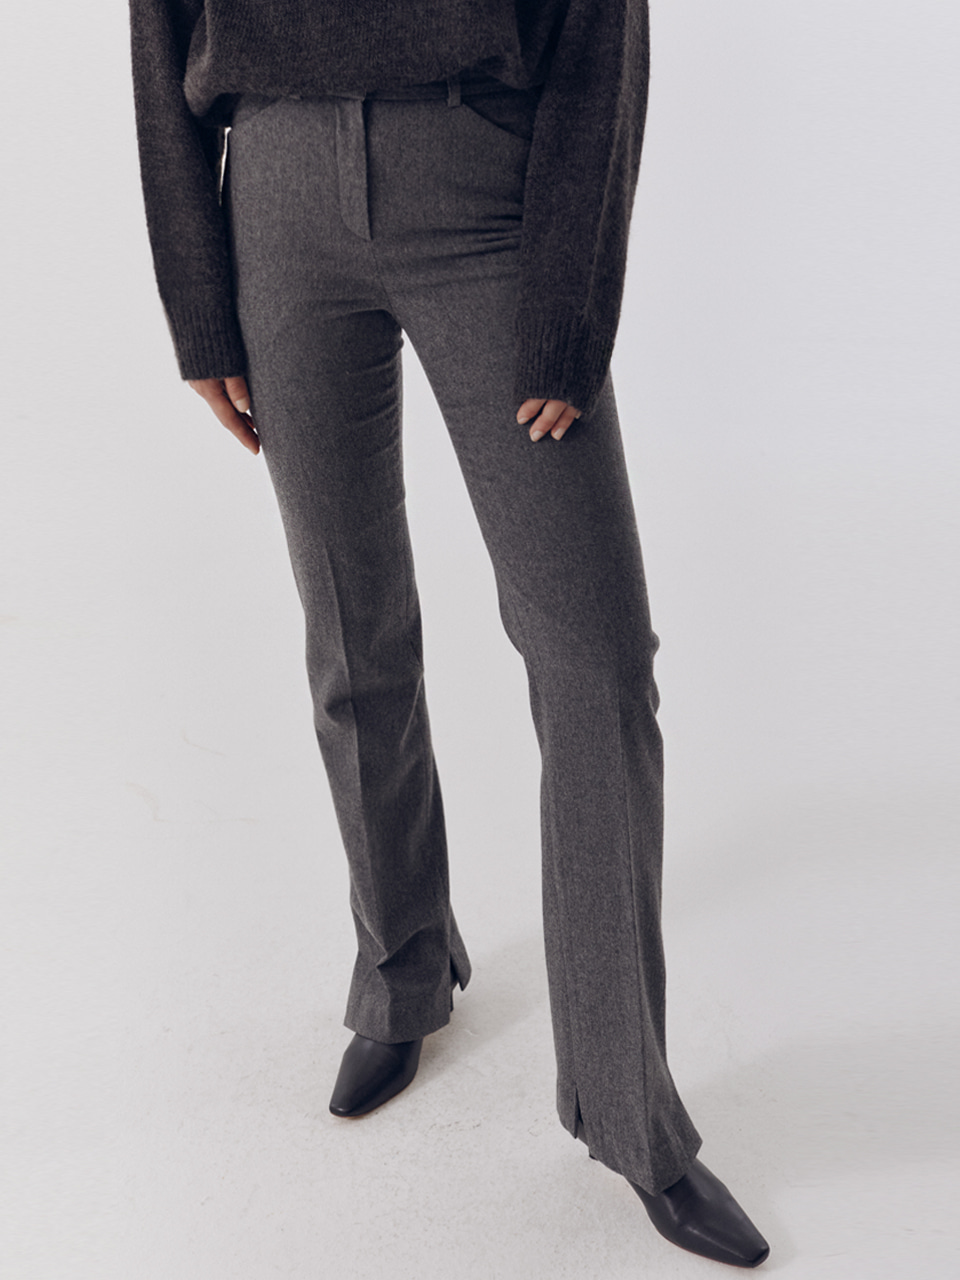 CASHMERE ASYMMETRY SLIM BOOT-CUT TROUSERS MELANGE GREY